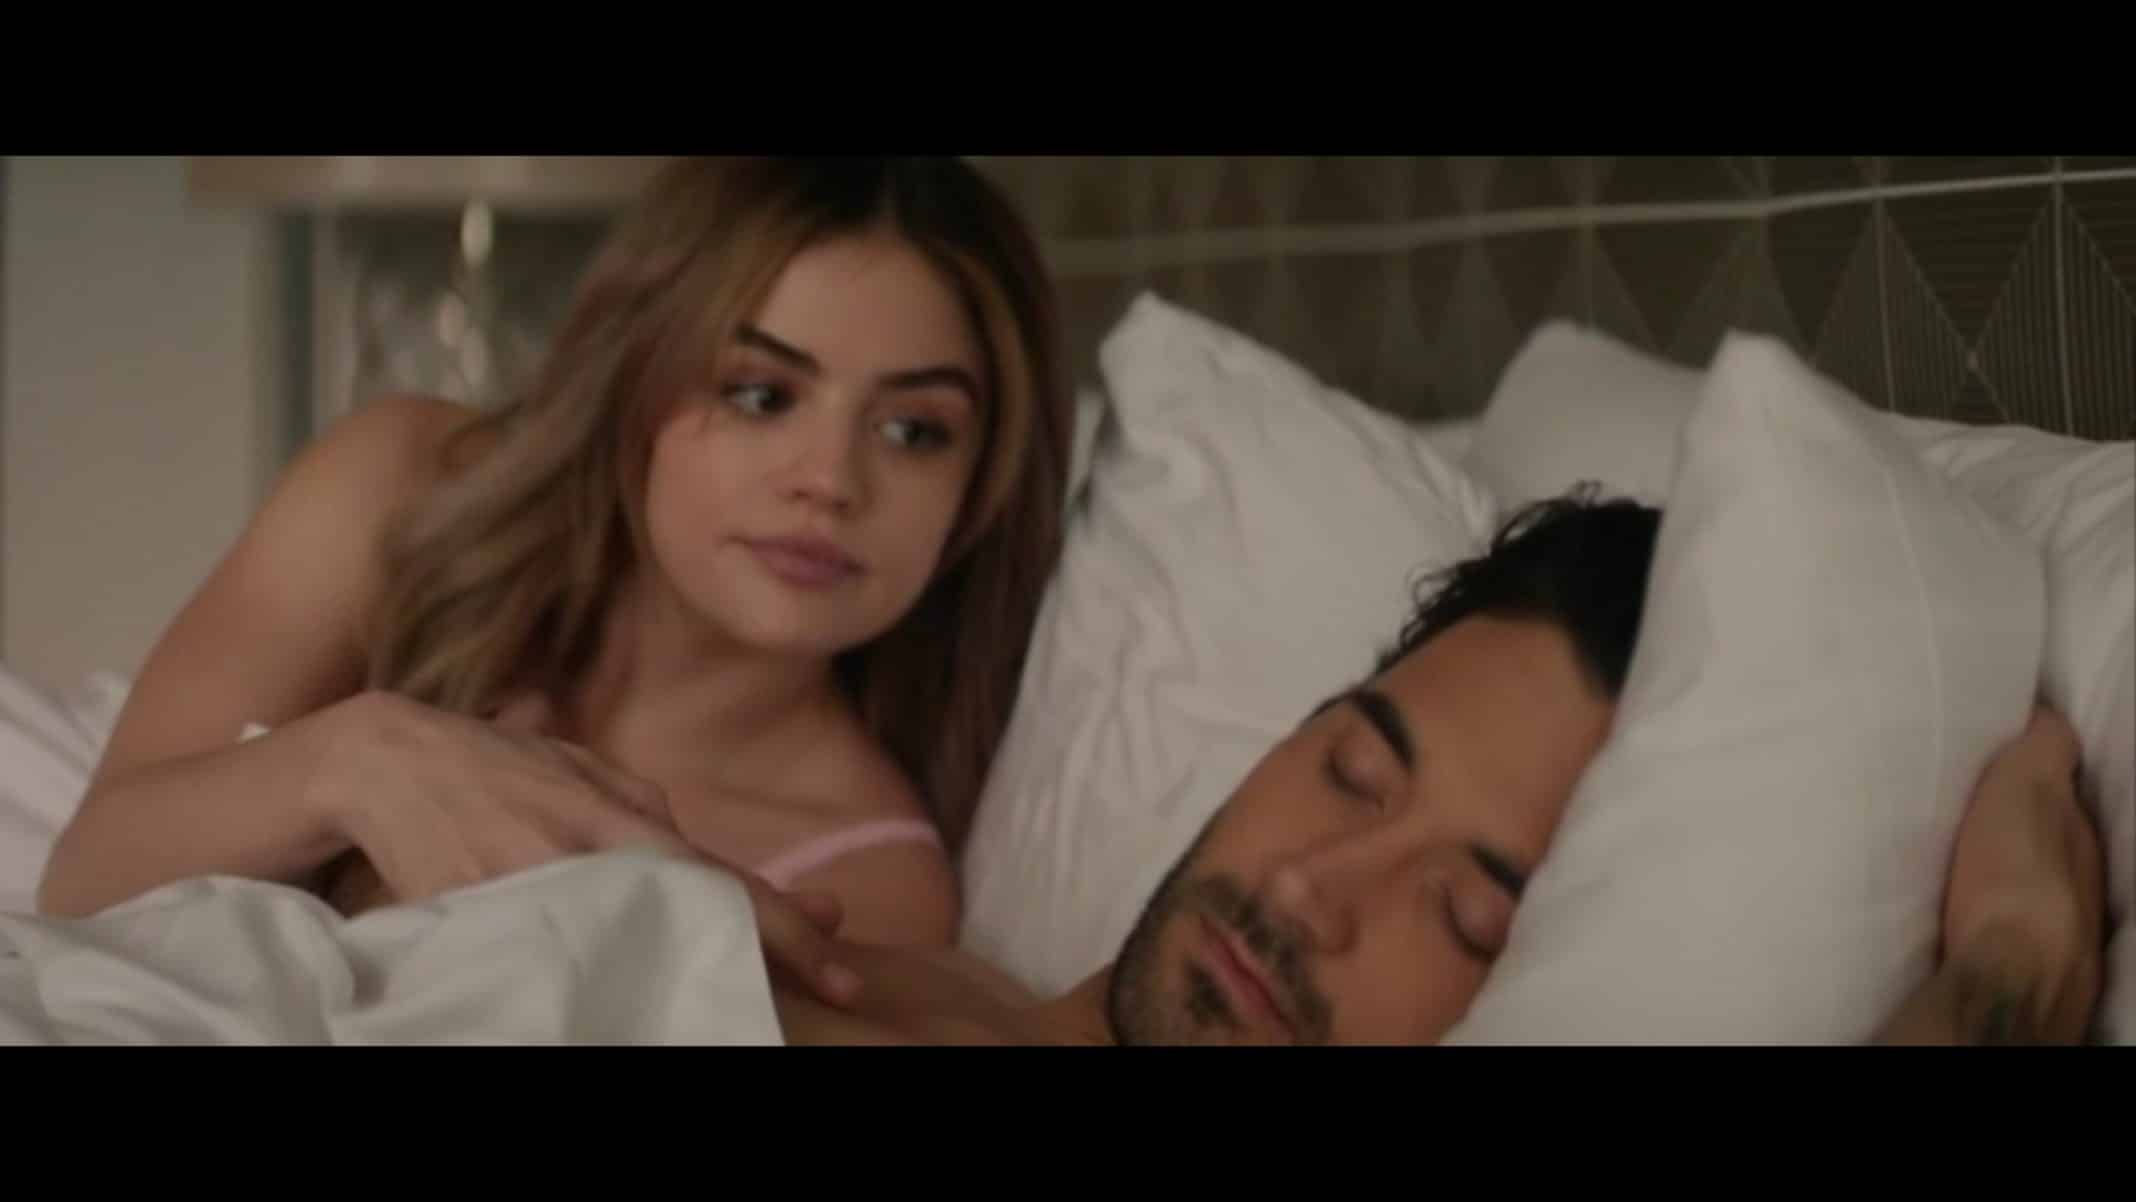 Lucy (Lucy Hale) and Grant (Leonidas Gulaptis)  after sleeping together.